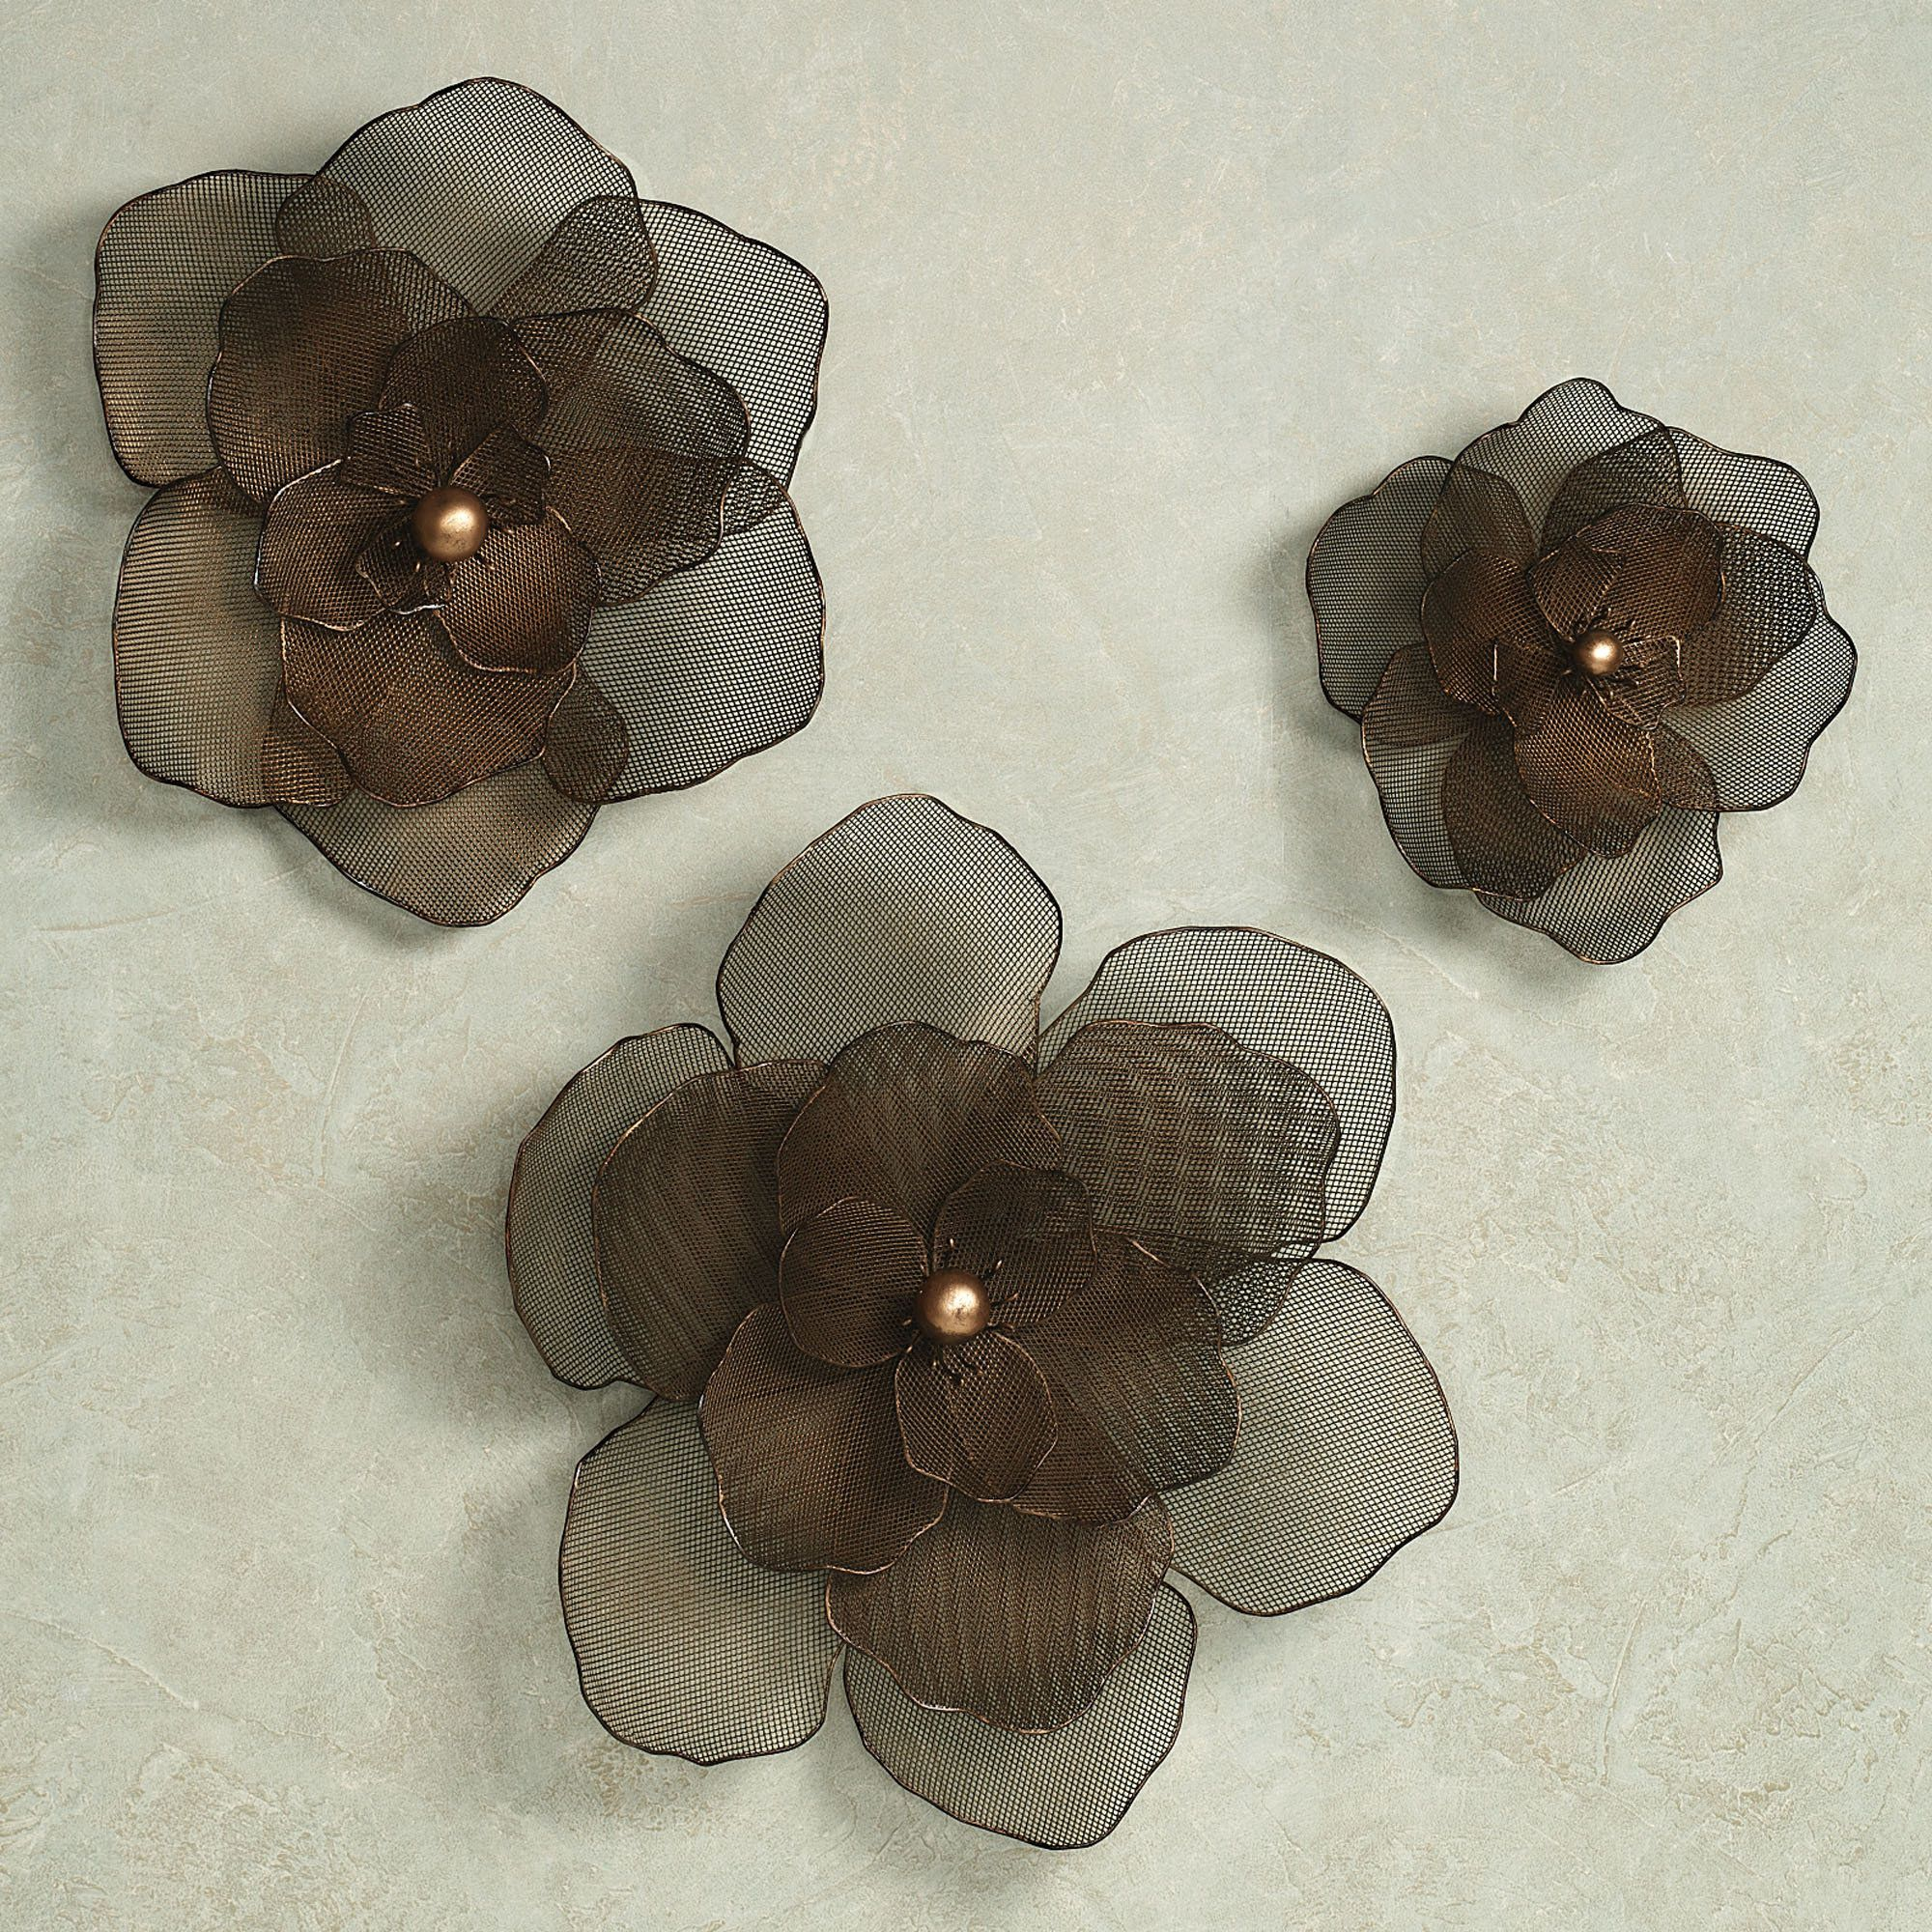 Metal Wall Art Flowers asataire flower blossom metal wall art set | wall art sets, metal